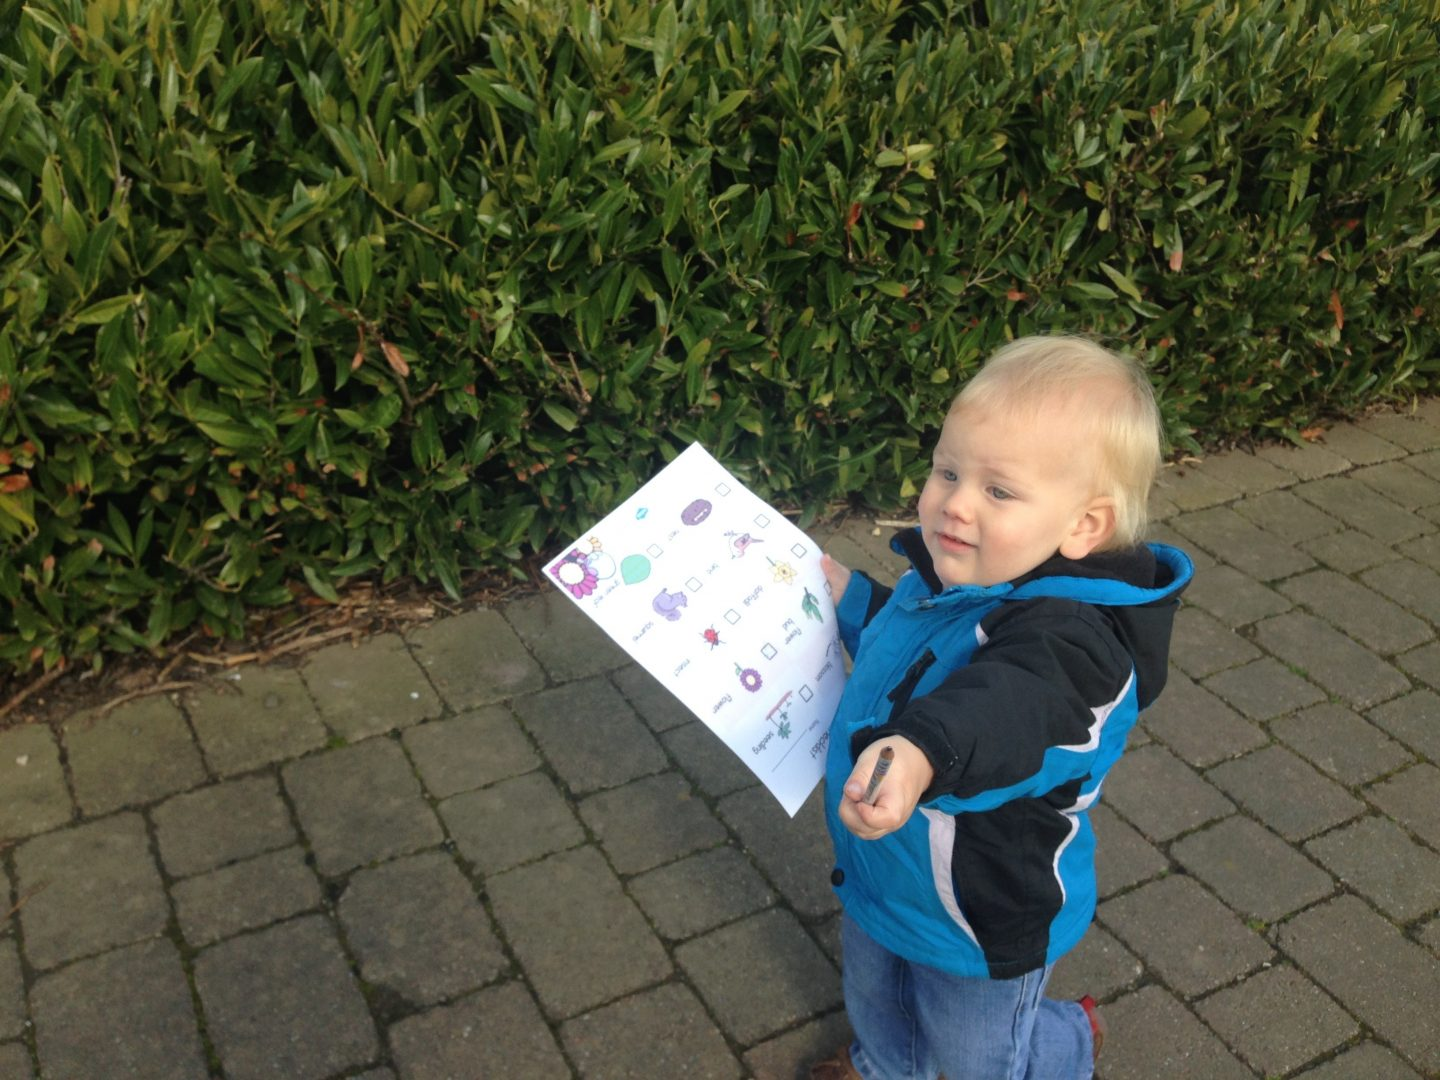 nature walk with a toddler free days out ideas